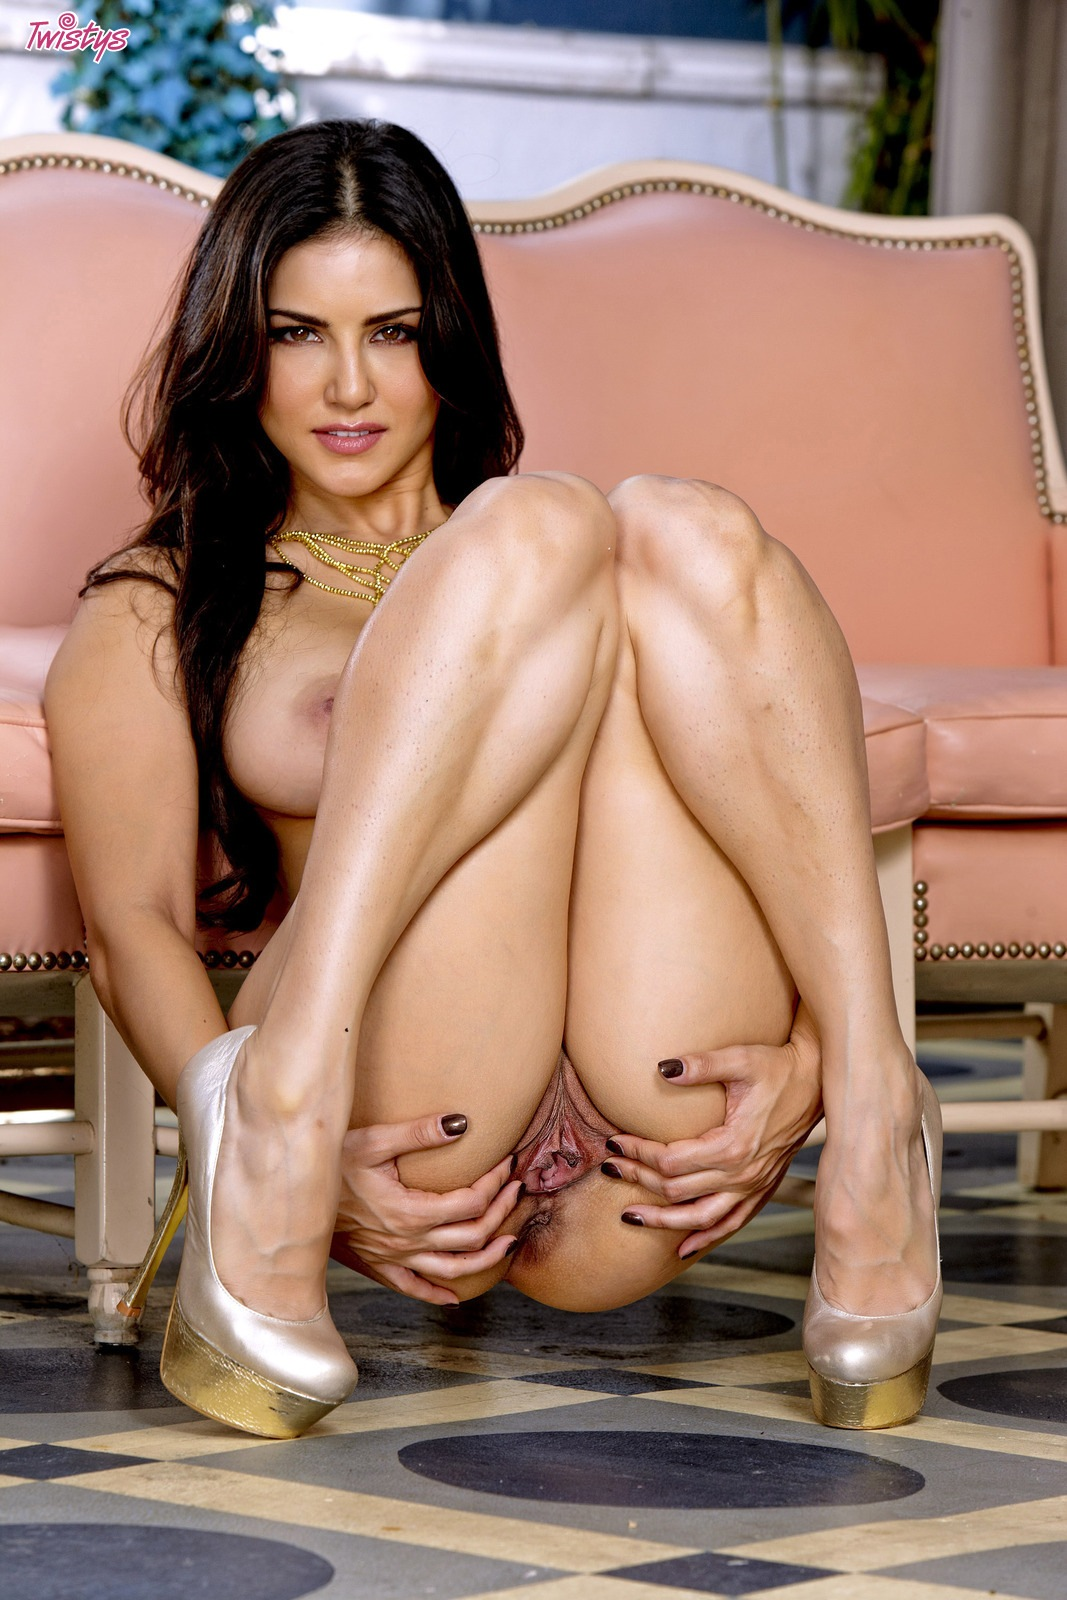 Sunny leone sex photo download-3900